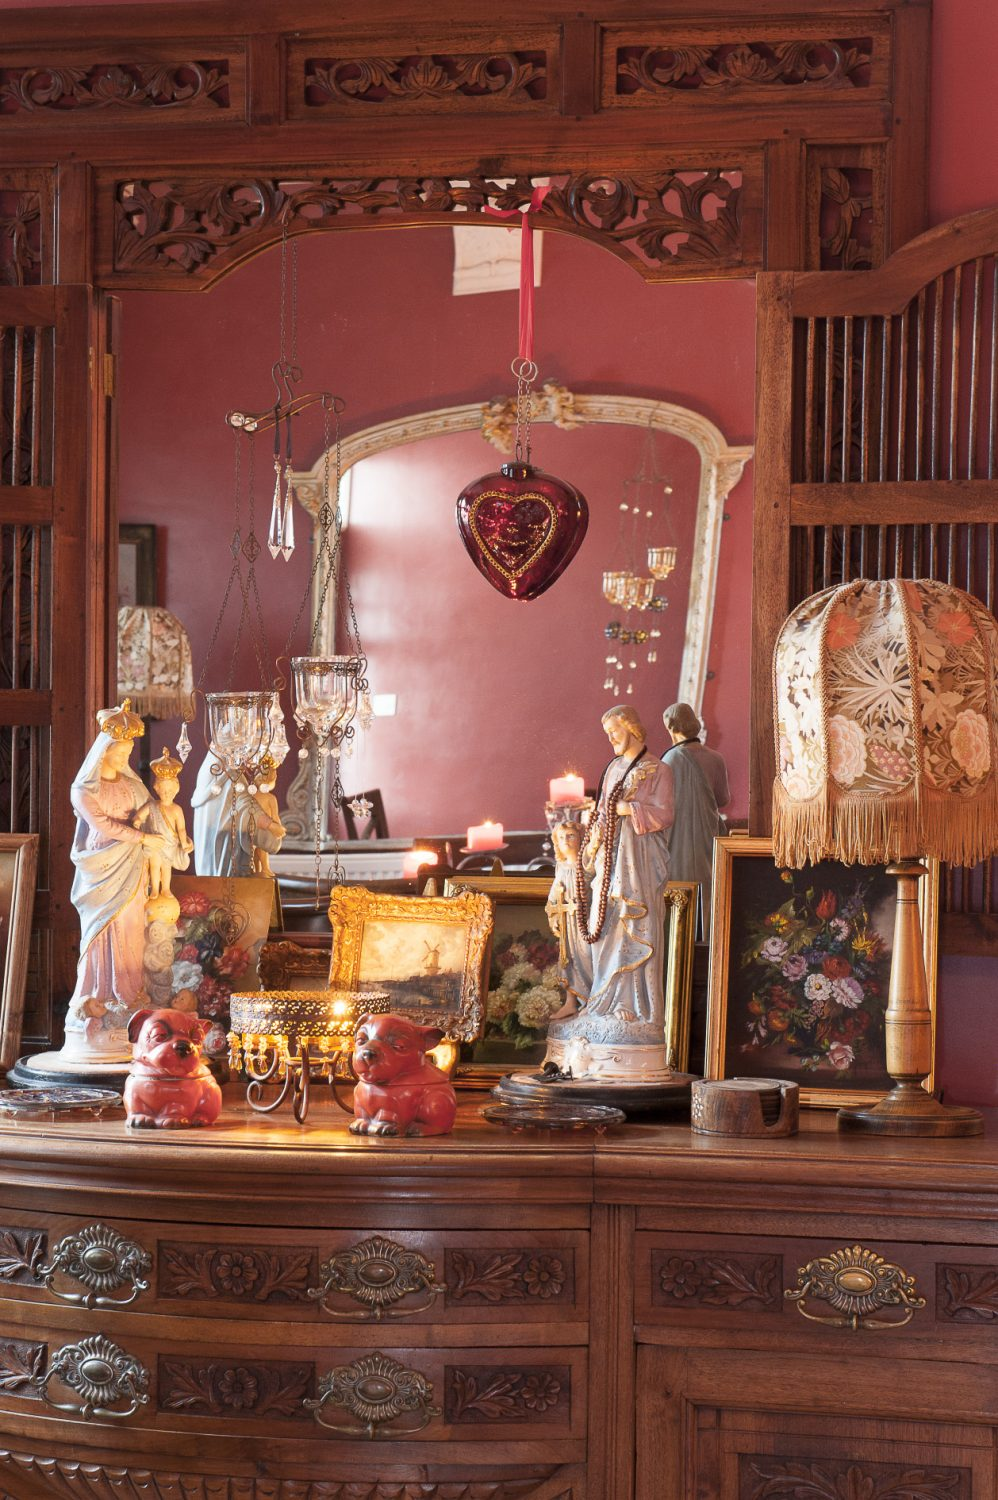 In the dining room the surface of an ornate cabinet is filled with miniature paintings in gilded frames and objects from the couple's travels